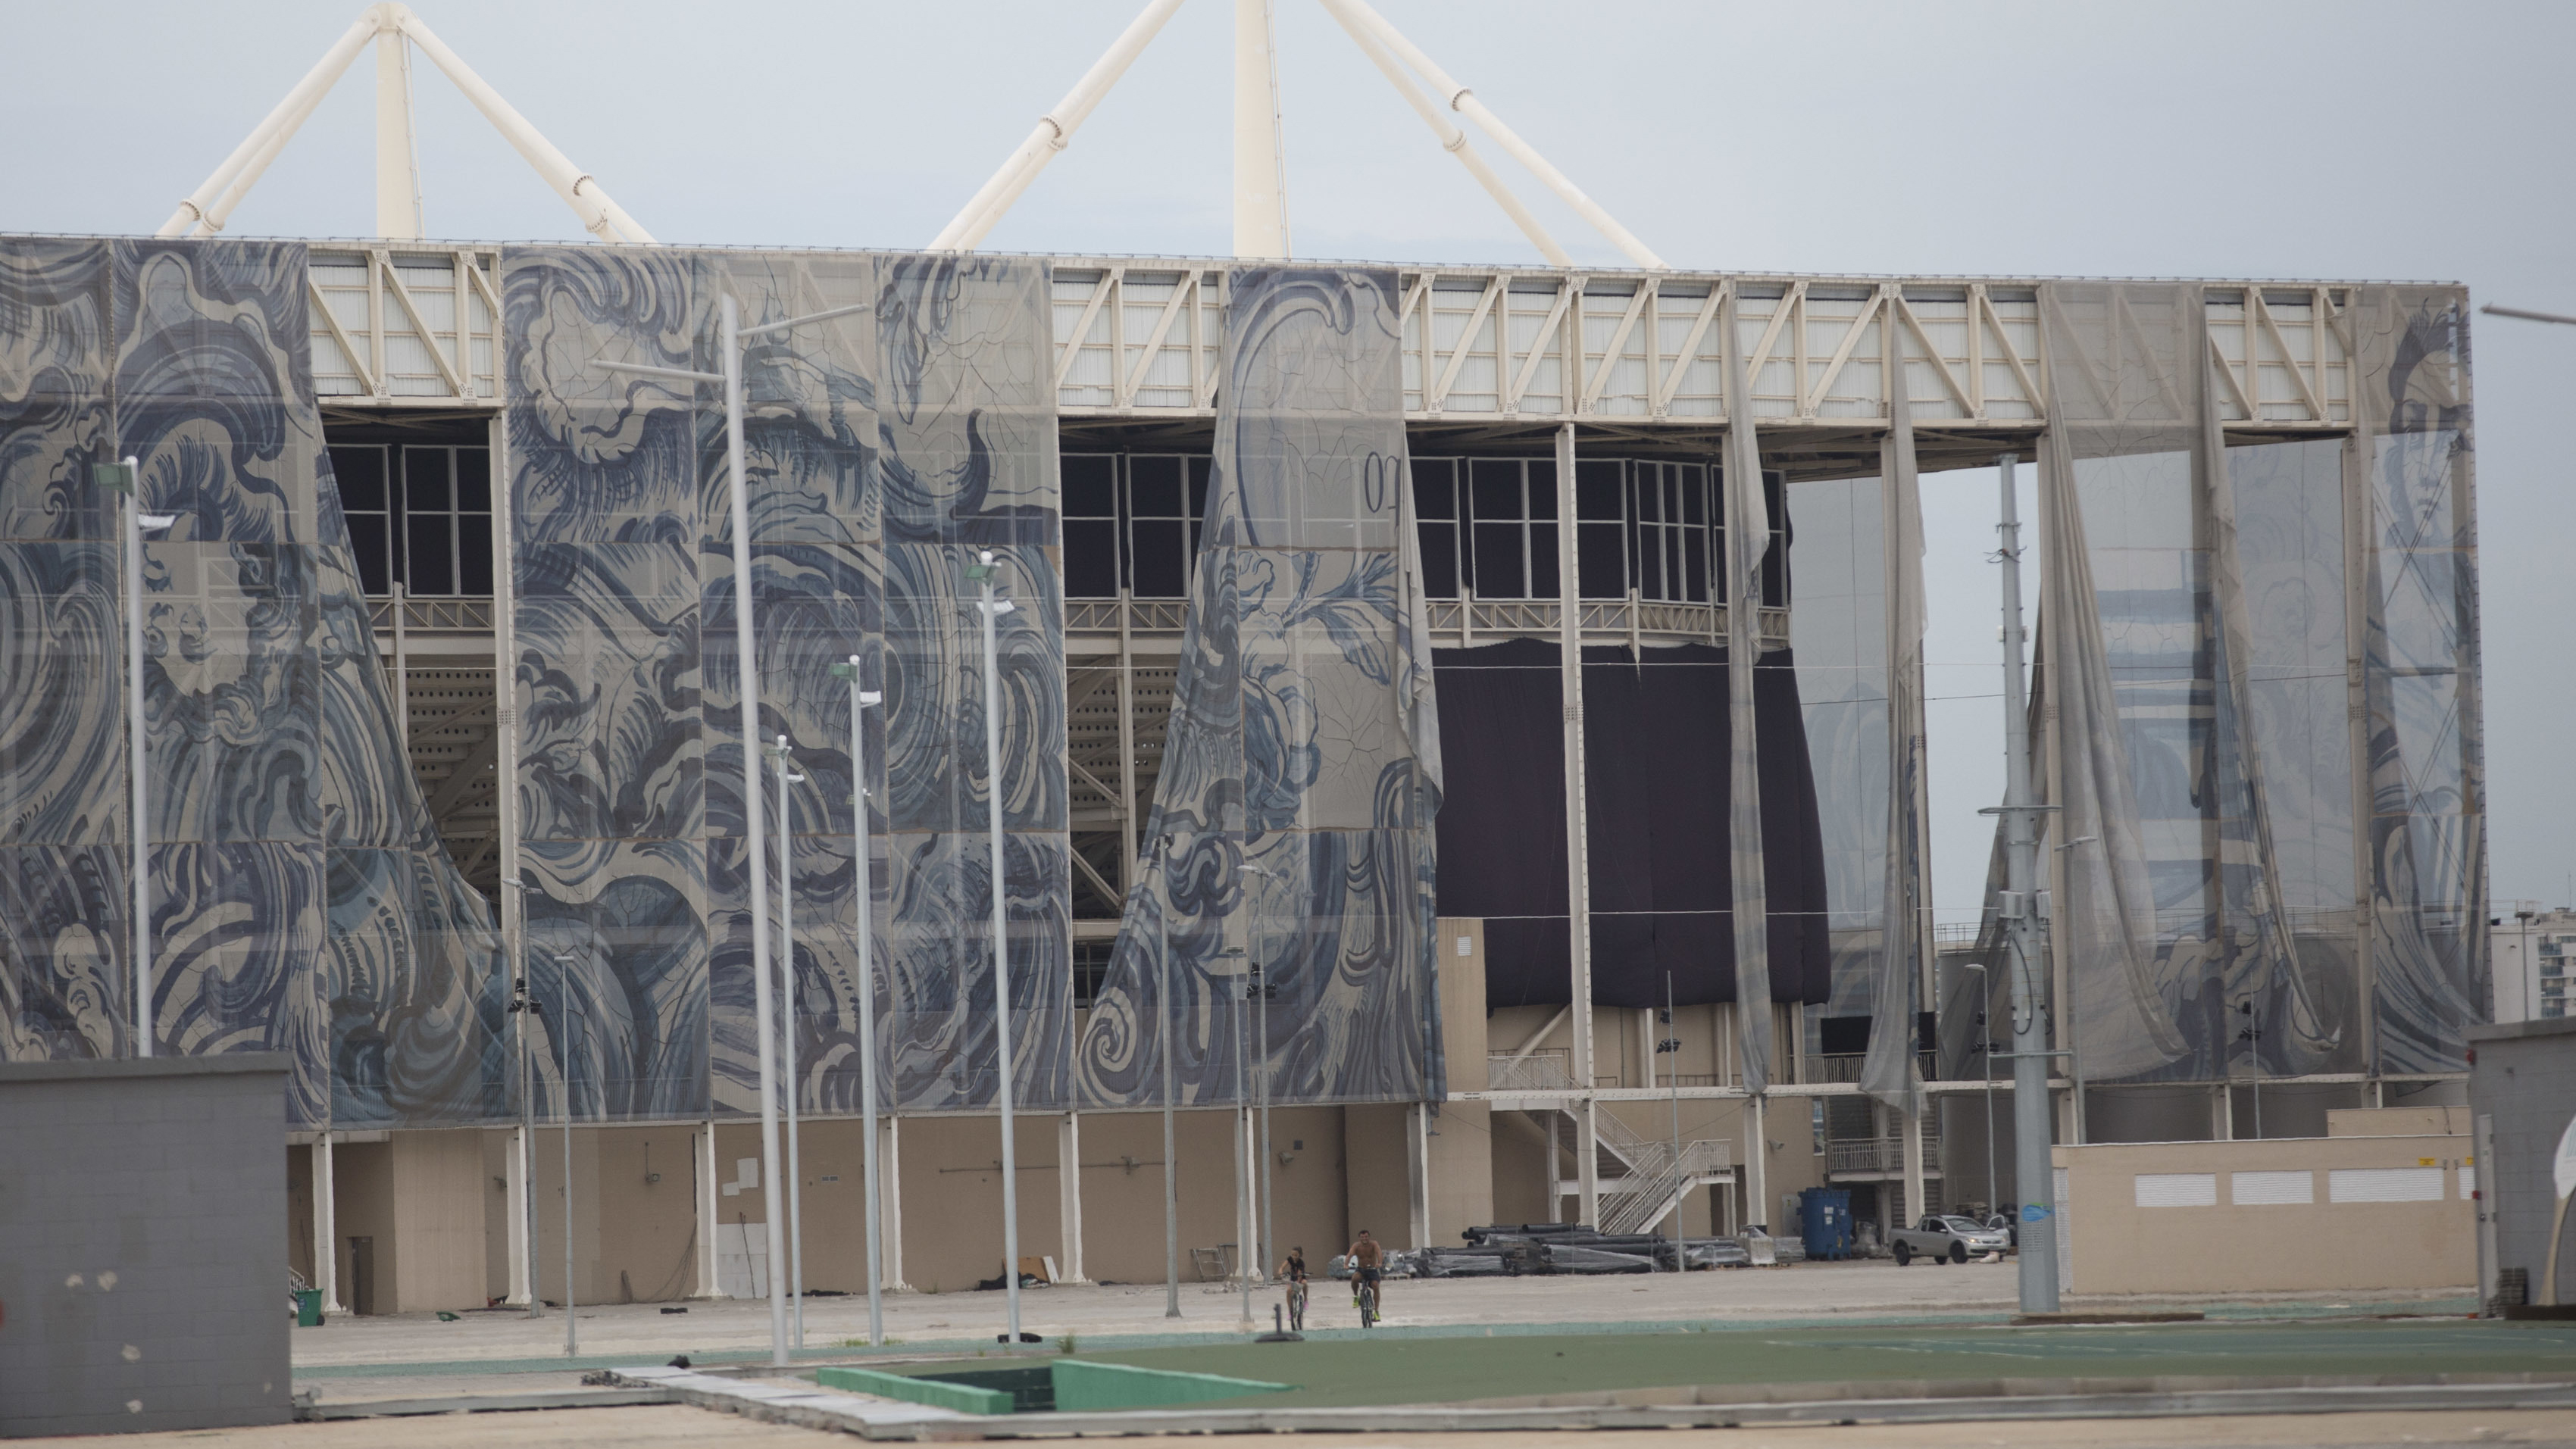 The Maracana stadium has been vandalised. (AAP)